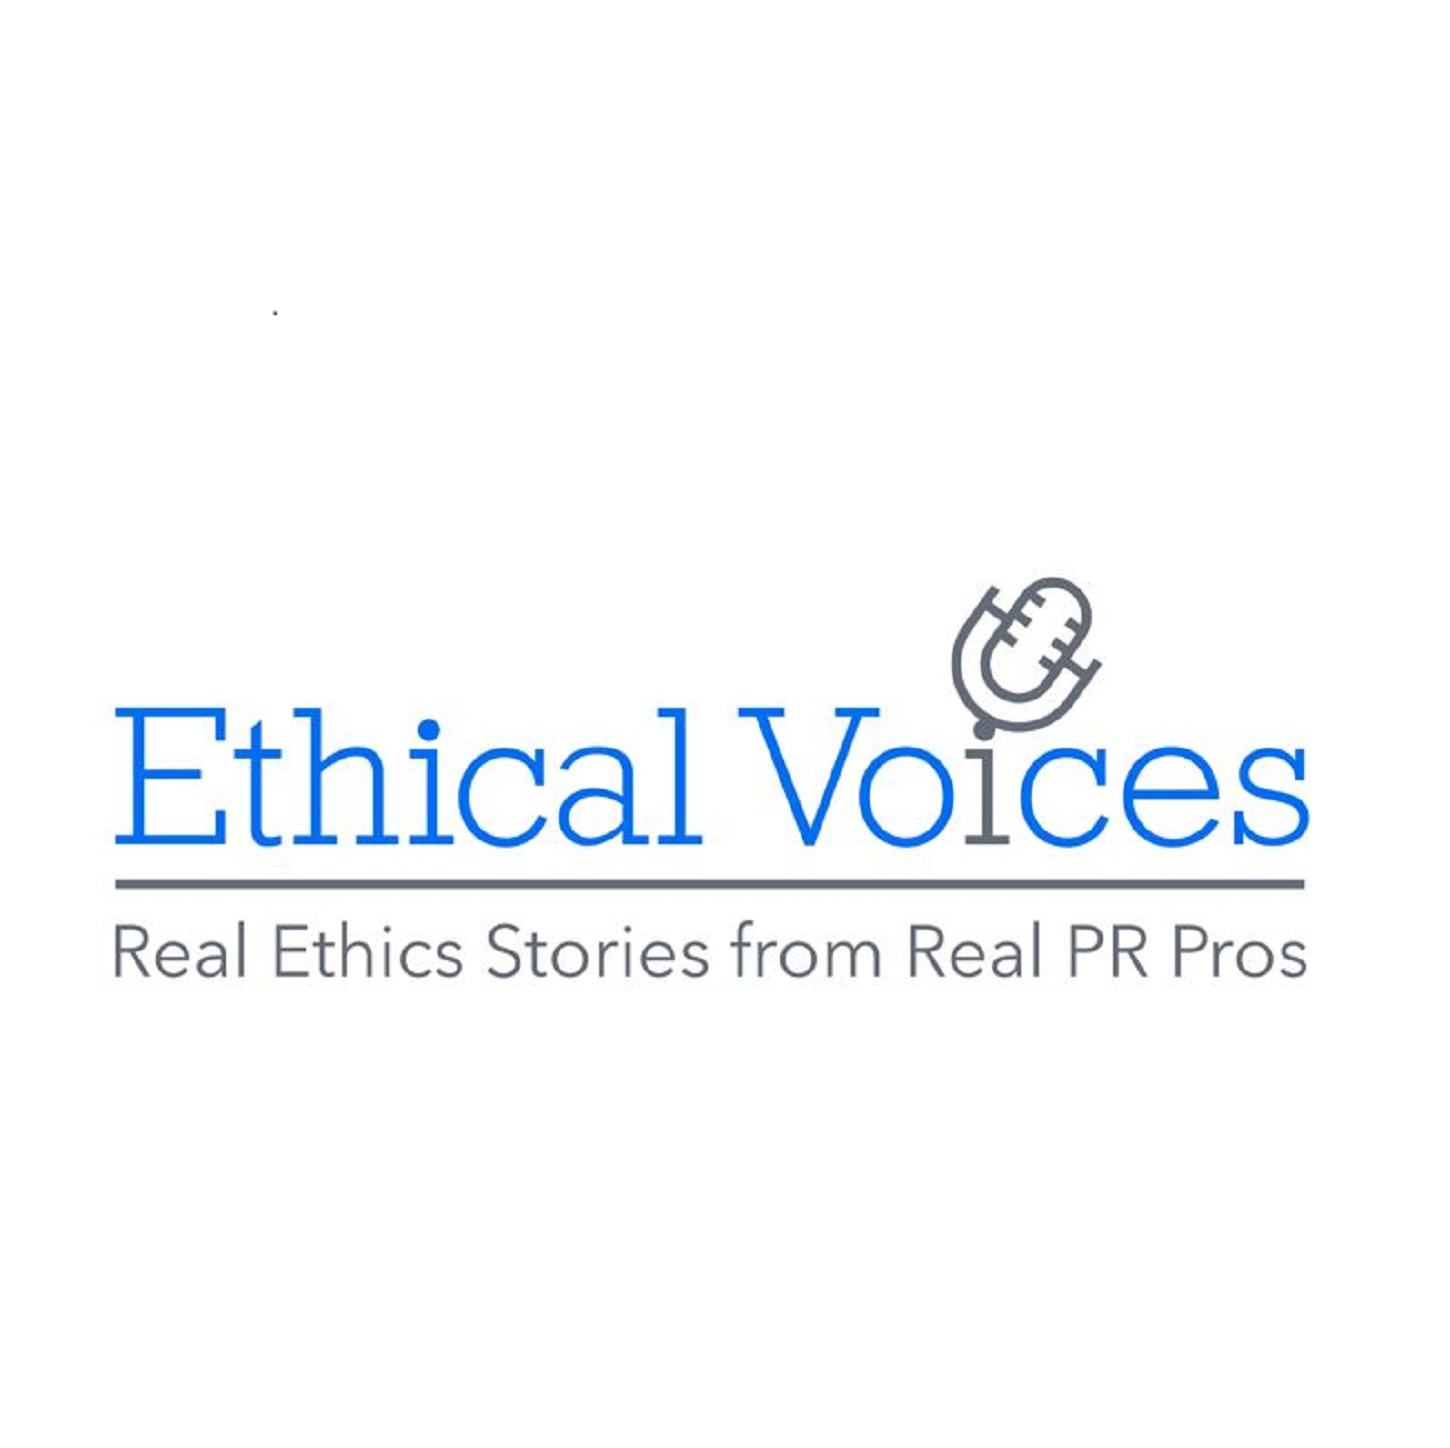 Ethical Voices Podcast: Real Ethics Stories from Real PR Pros show art